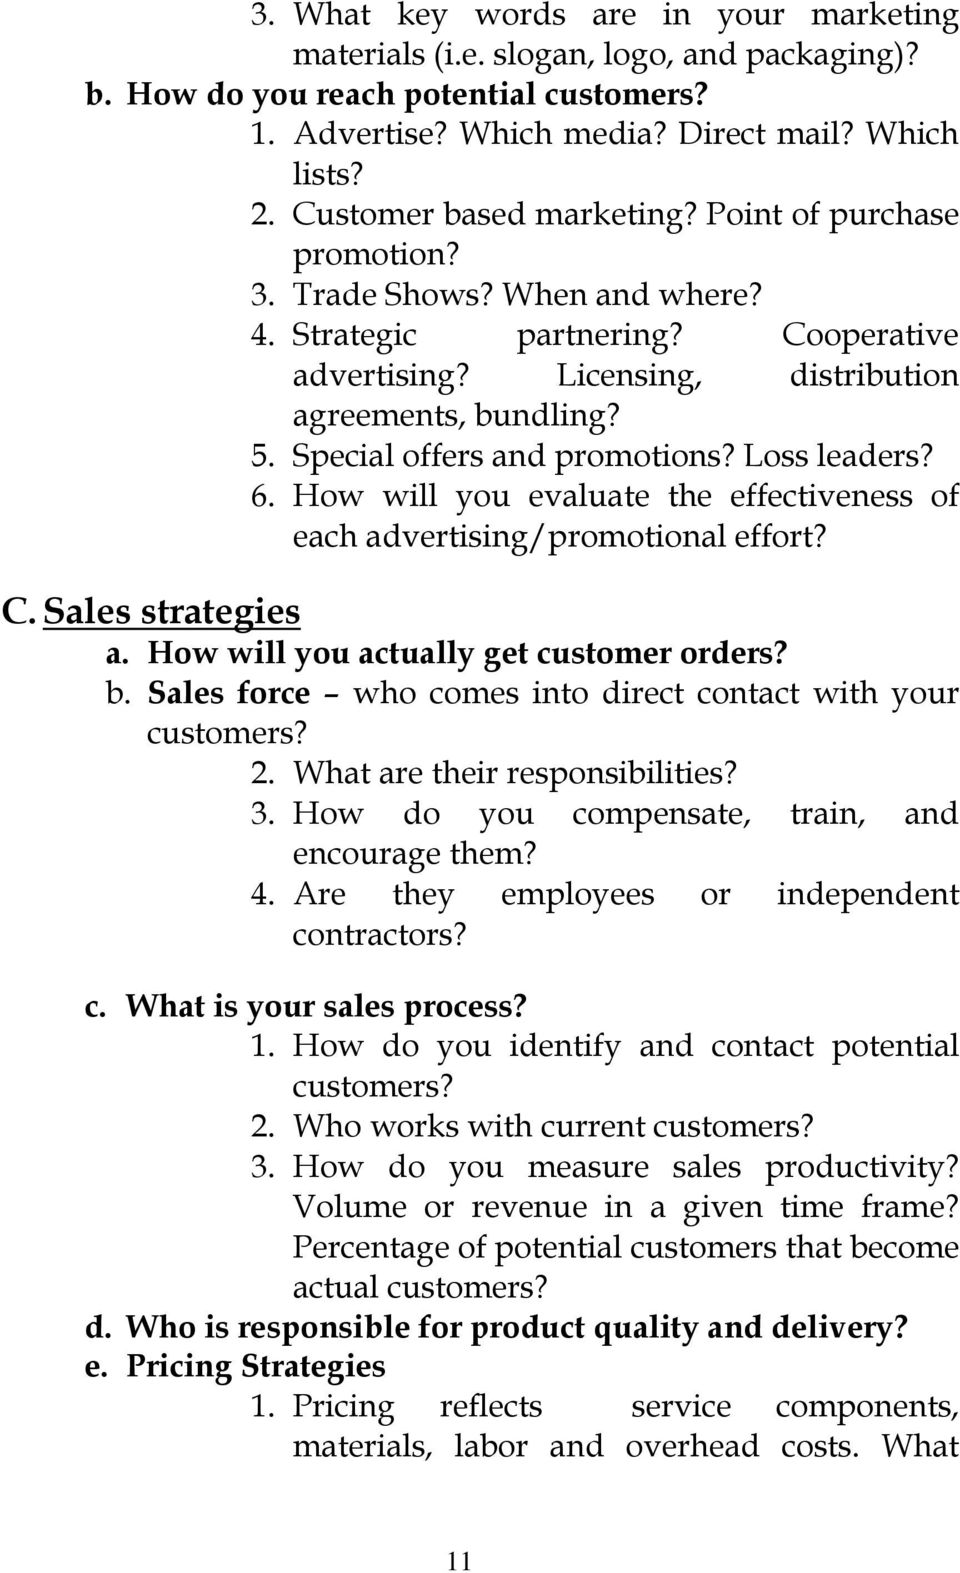 Special offers and promotions? Loss leaders? 6. How will you evaluate the effectiveness of each advertising/promotional effort? C. Sales strategies a. How will you actually get customer orders? b.